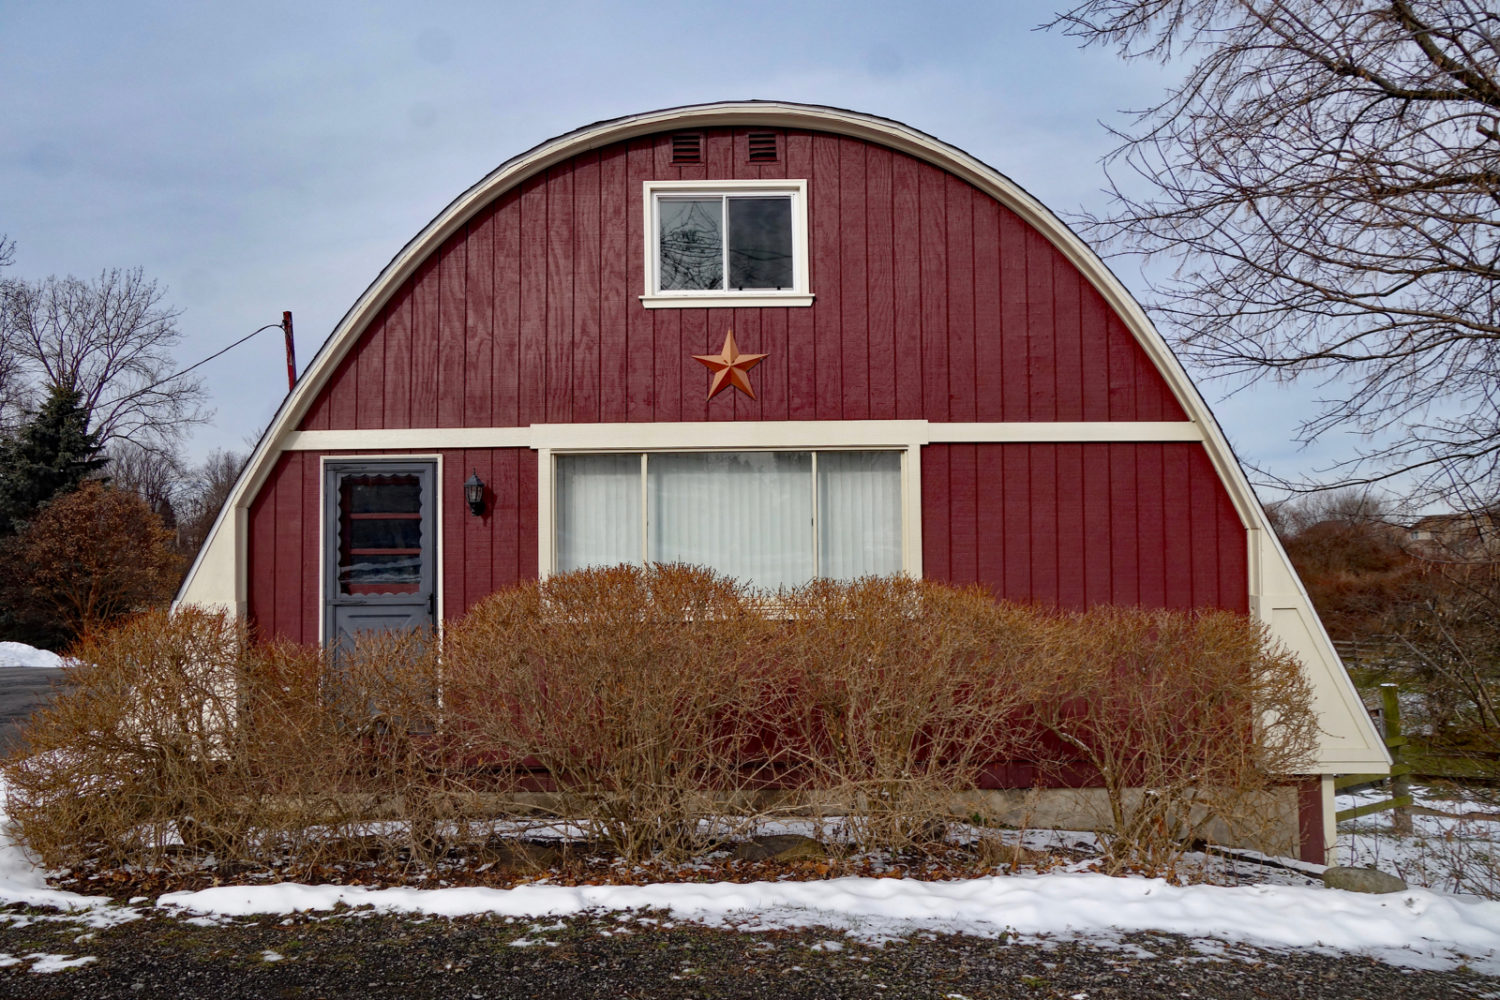 Quonset hut house on Titus Avenue Rochester, New York